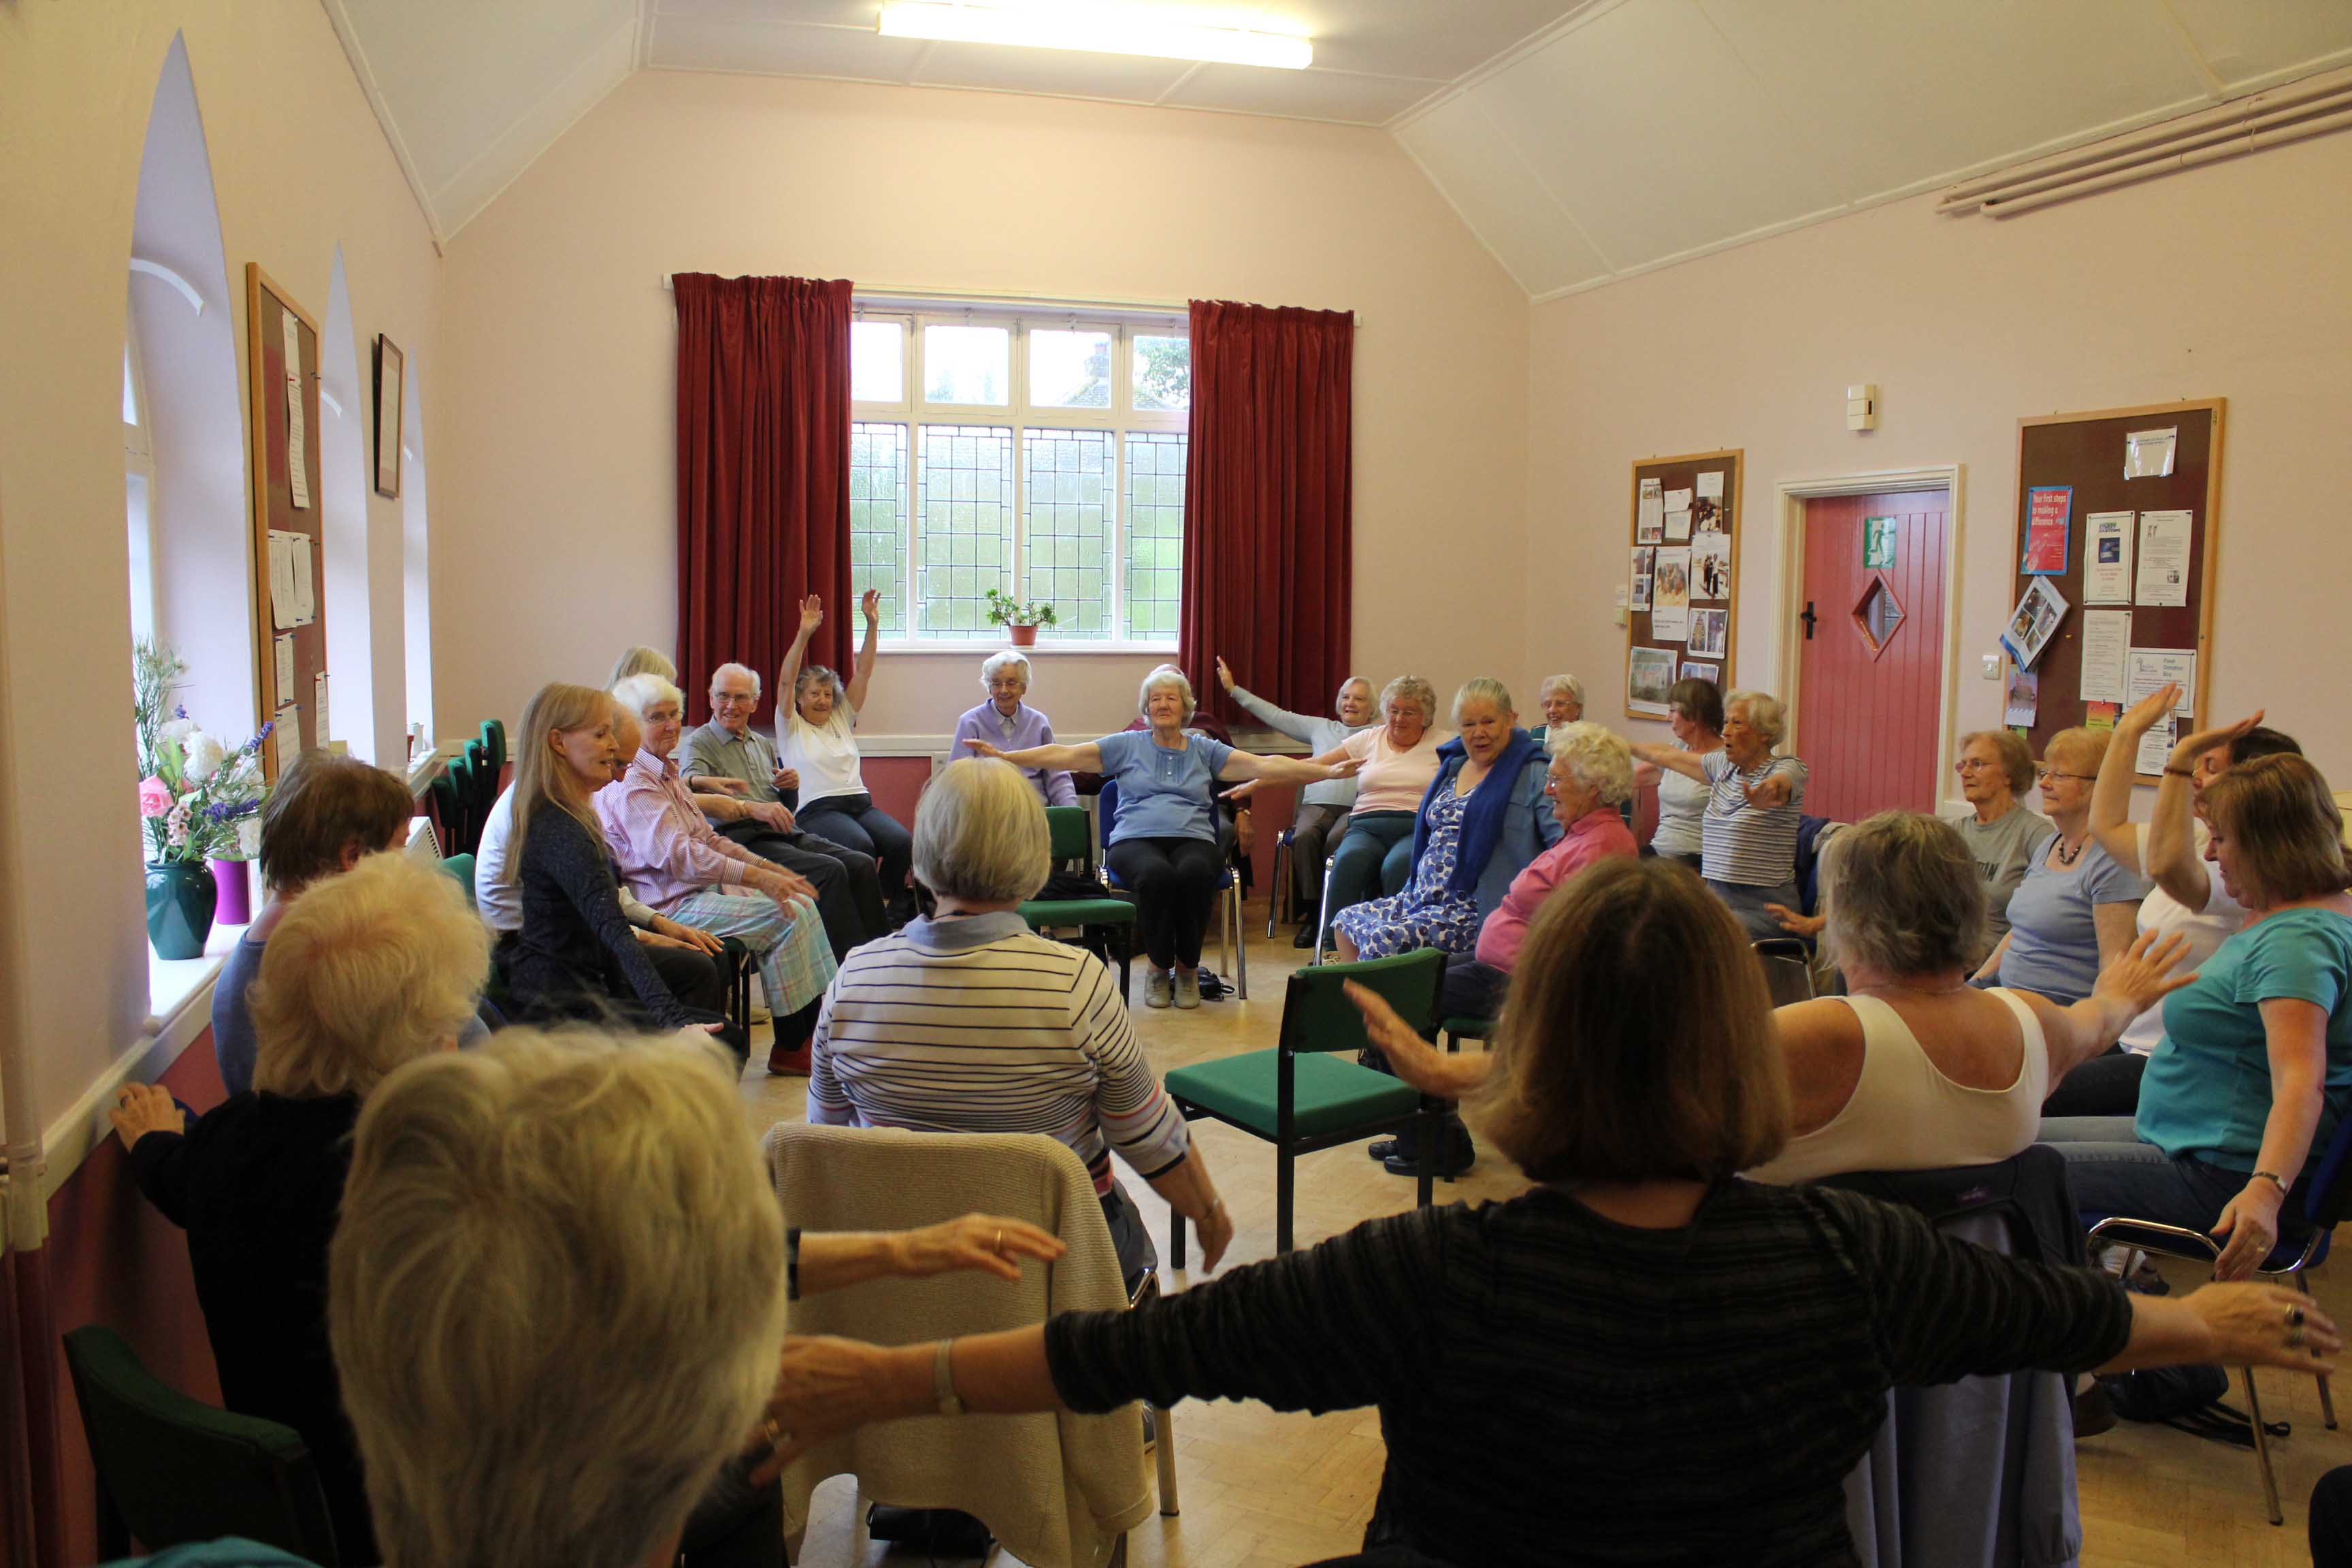 Age UK Senior's Chair Based Exercise Class